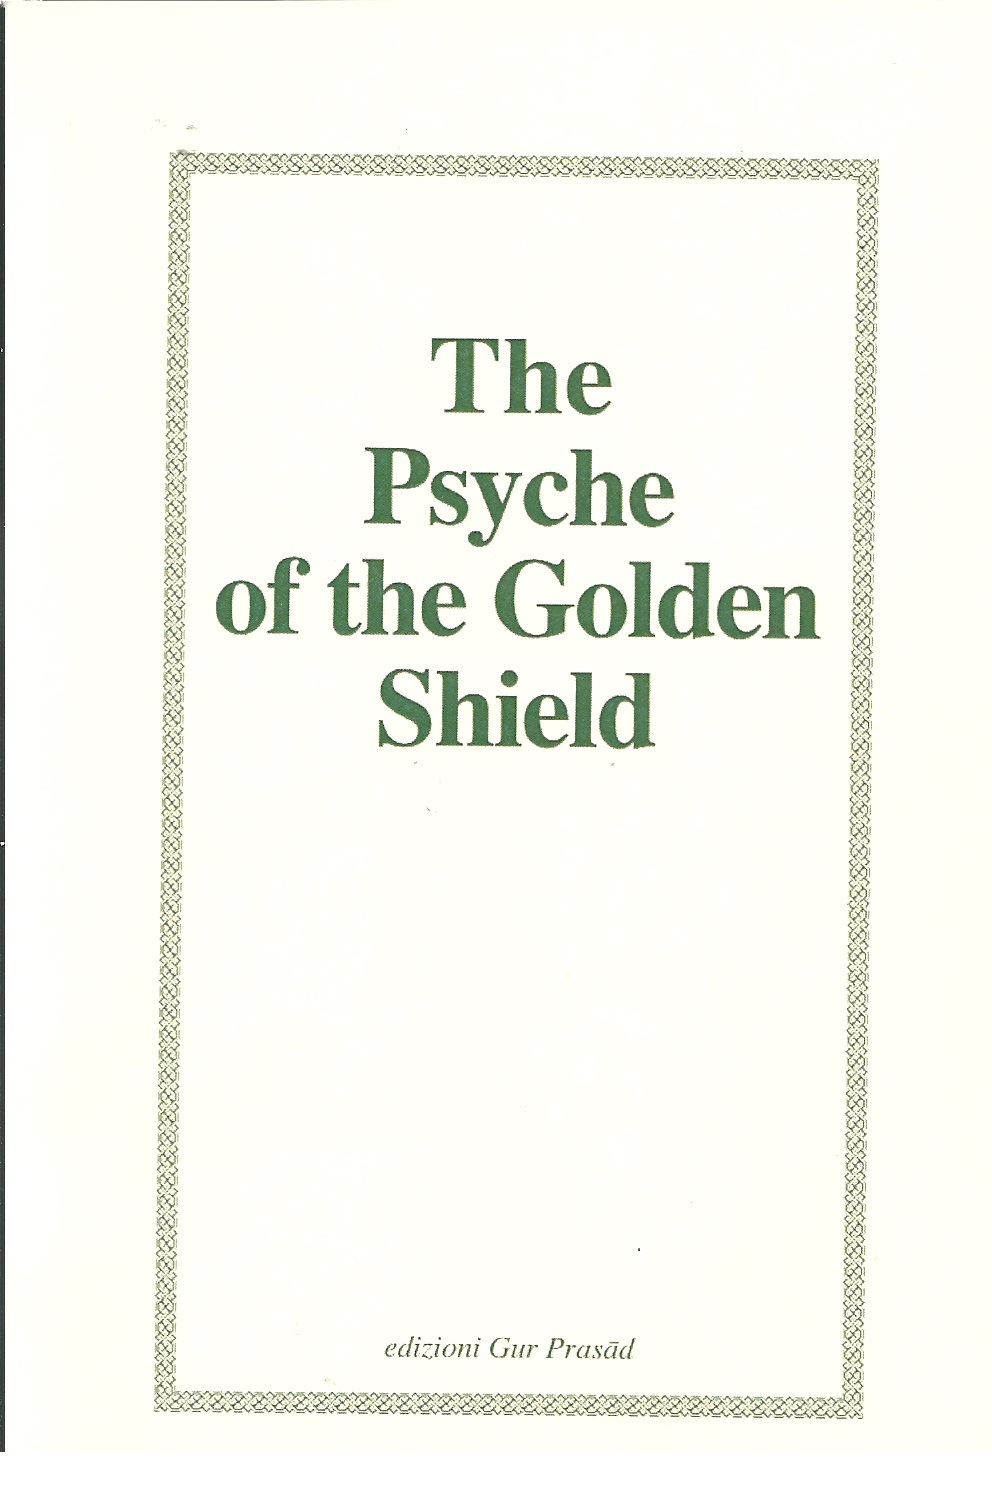 The_Psyche_of_the_Golden_Shield